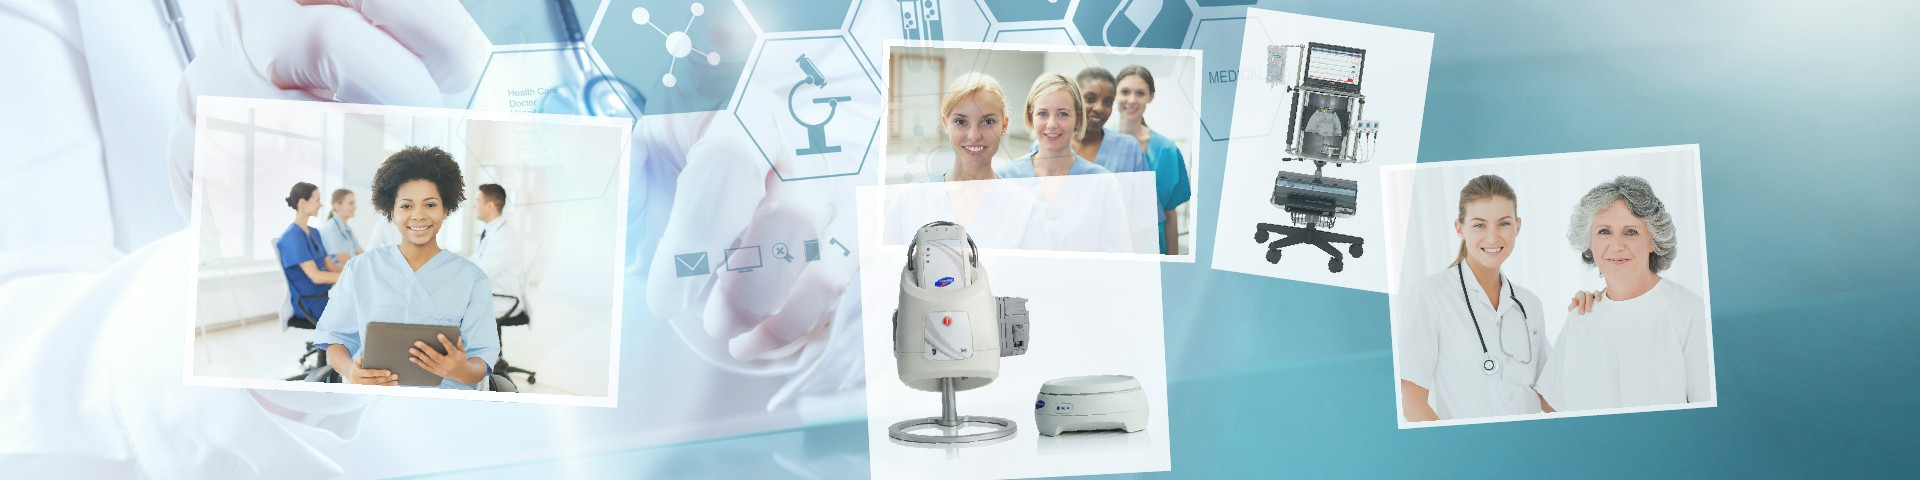 Collage_nurses_urodynamics_equipment.jpg